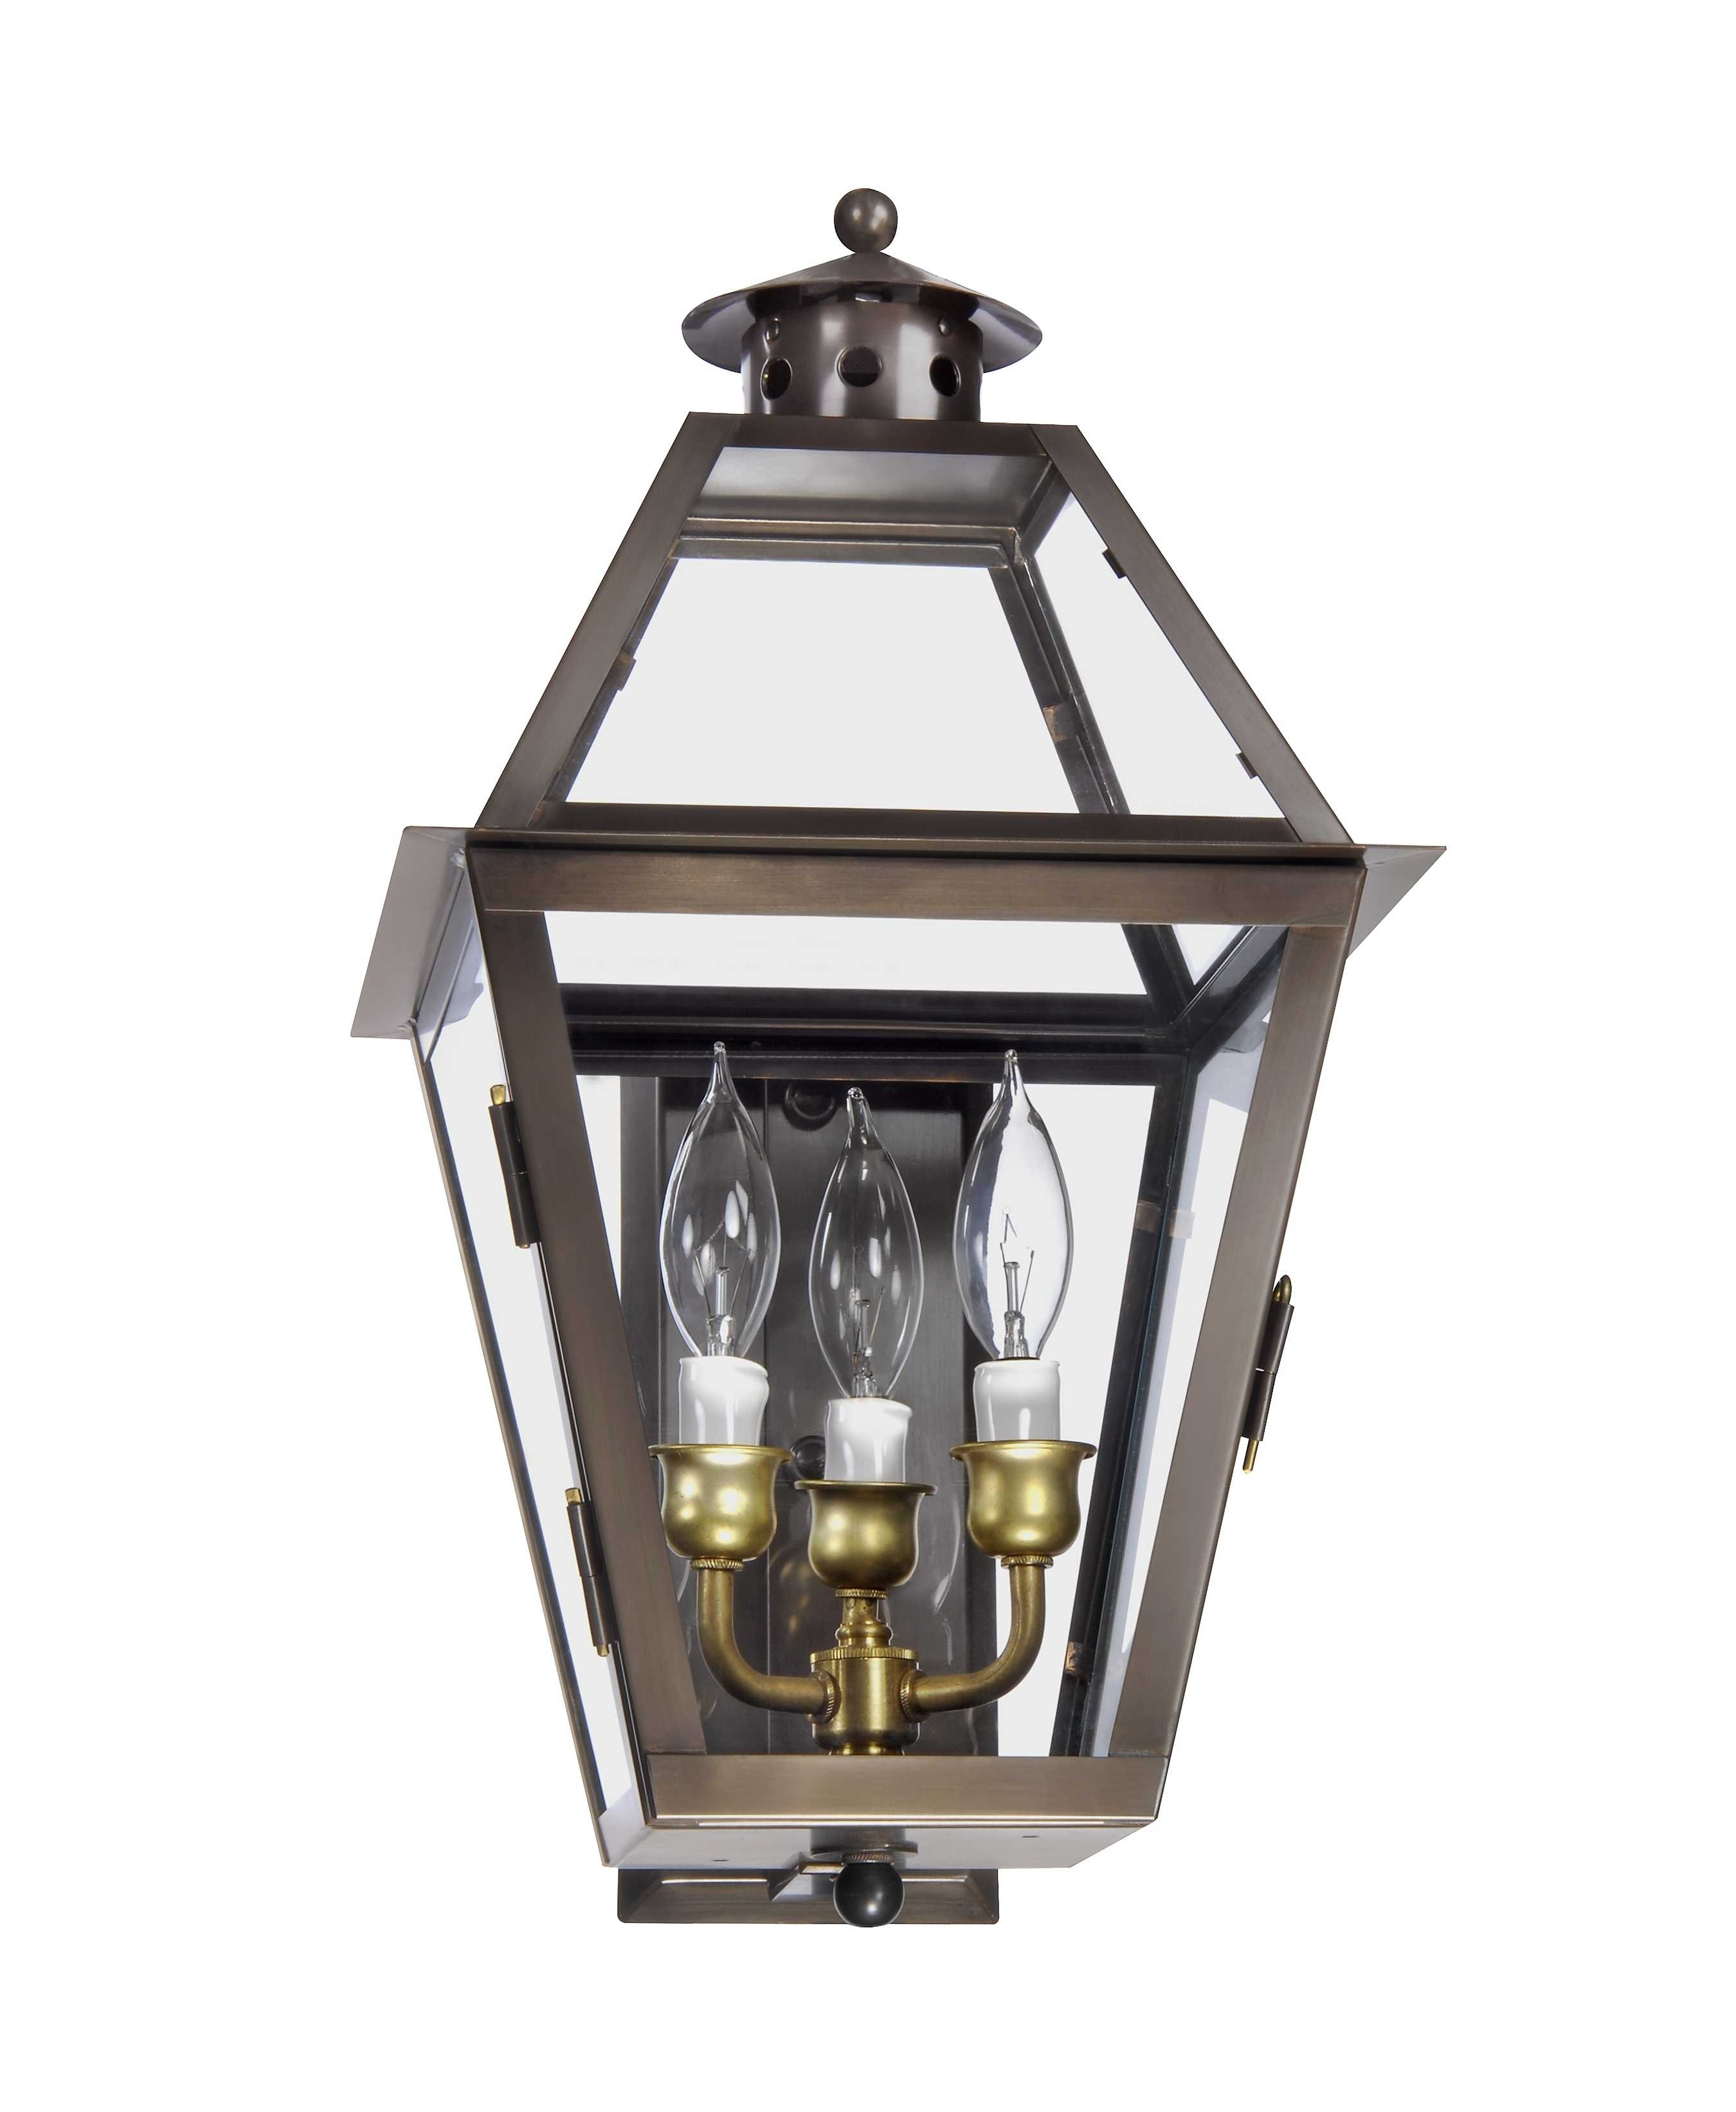 Charleston Collection | Ch-27 Wall Mount Gas Lantern - Lantern & Scroll with regard to Copper Outdoor Lanterns (Image 3 of 20)